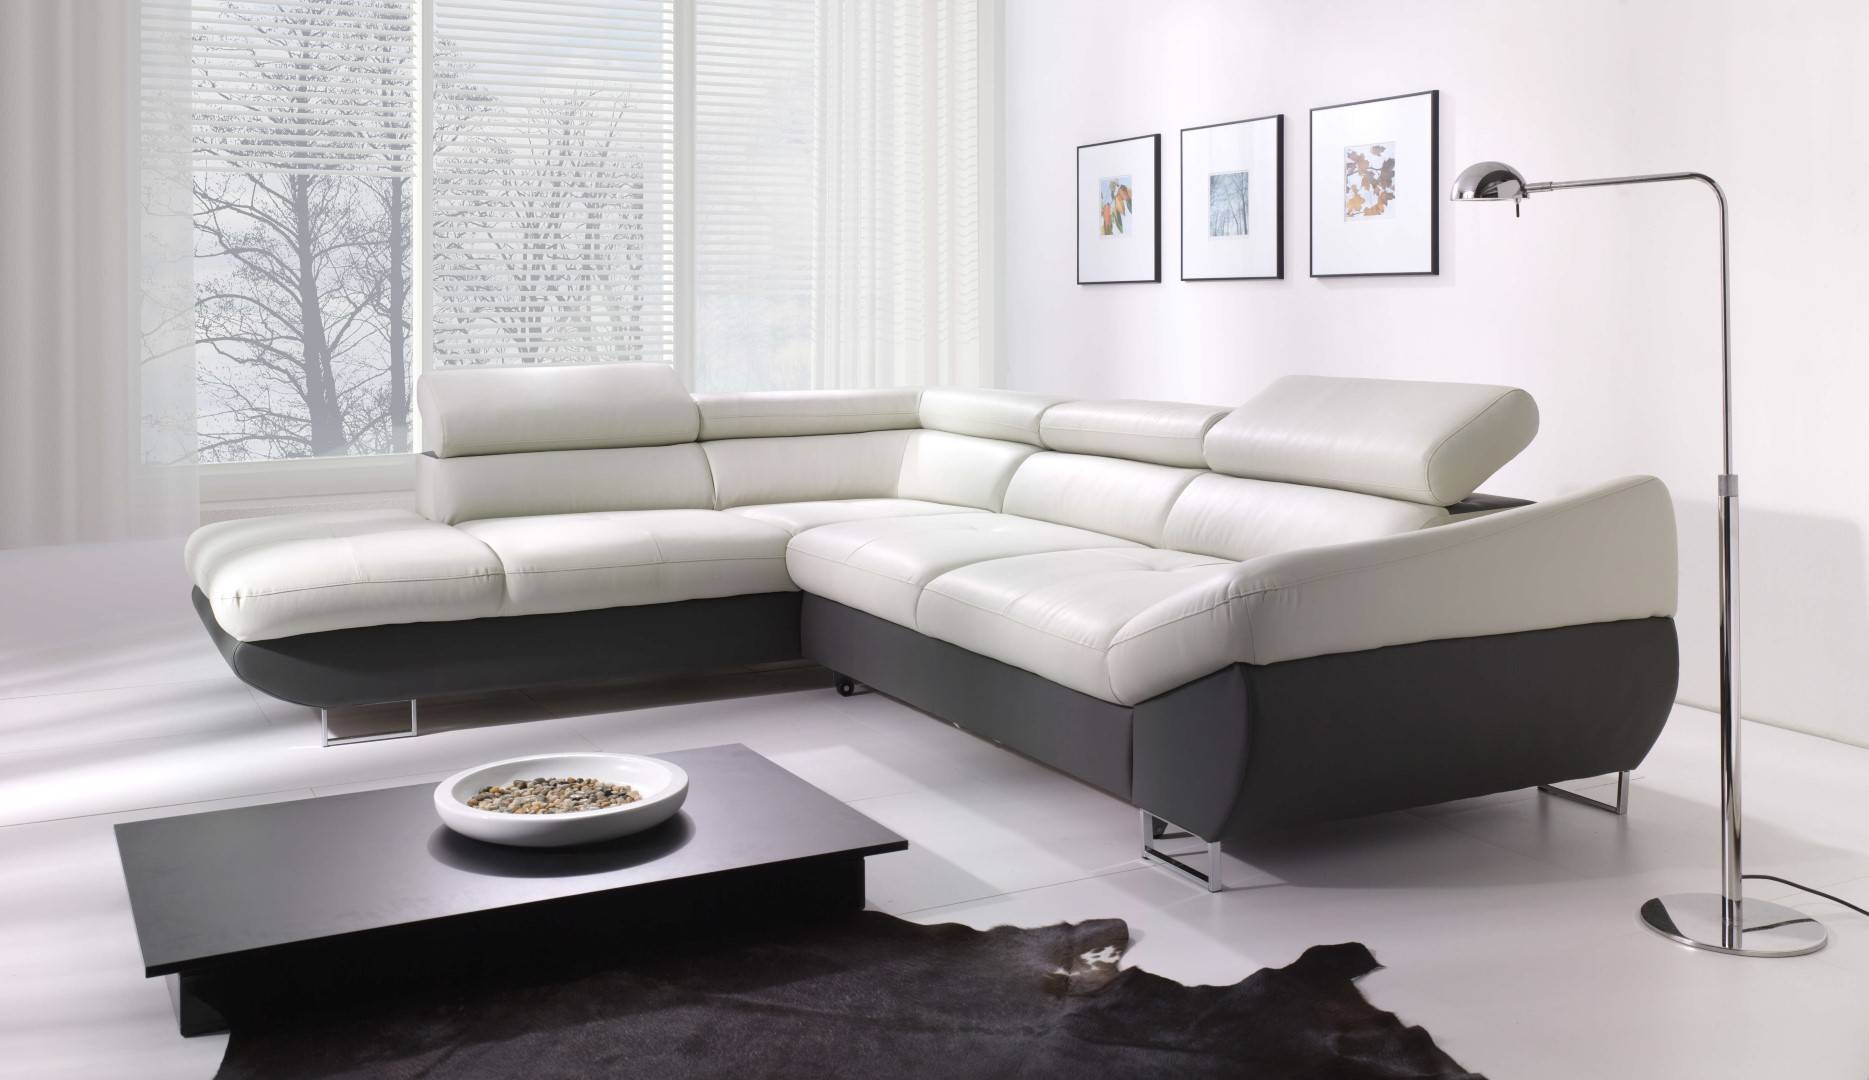 Fabio Sectional Sofa Sleeper With Storage | Creative Furniture pertaining to Sectional Sofa With Storage (Image 5 of 25)